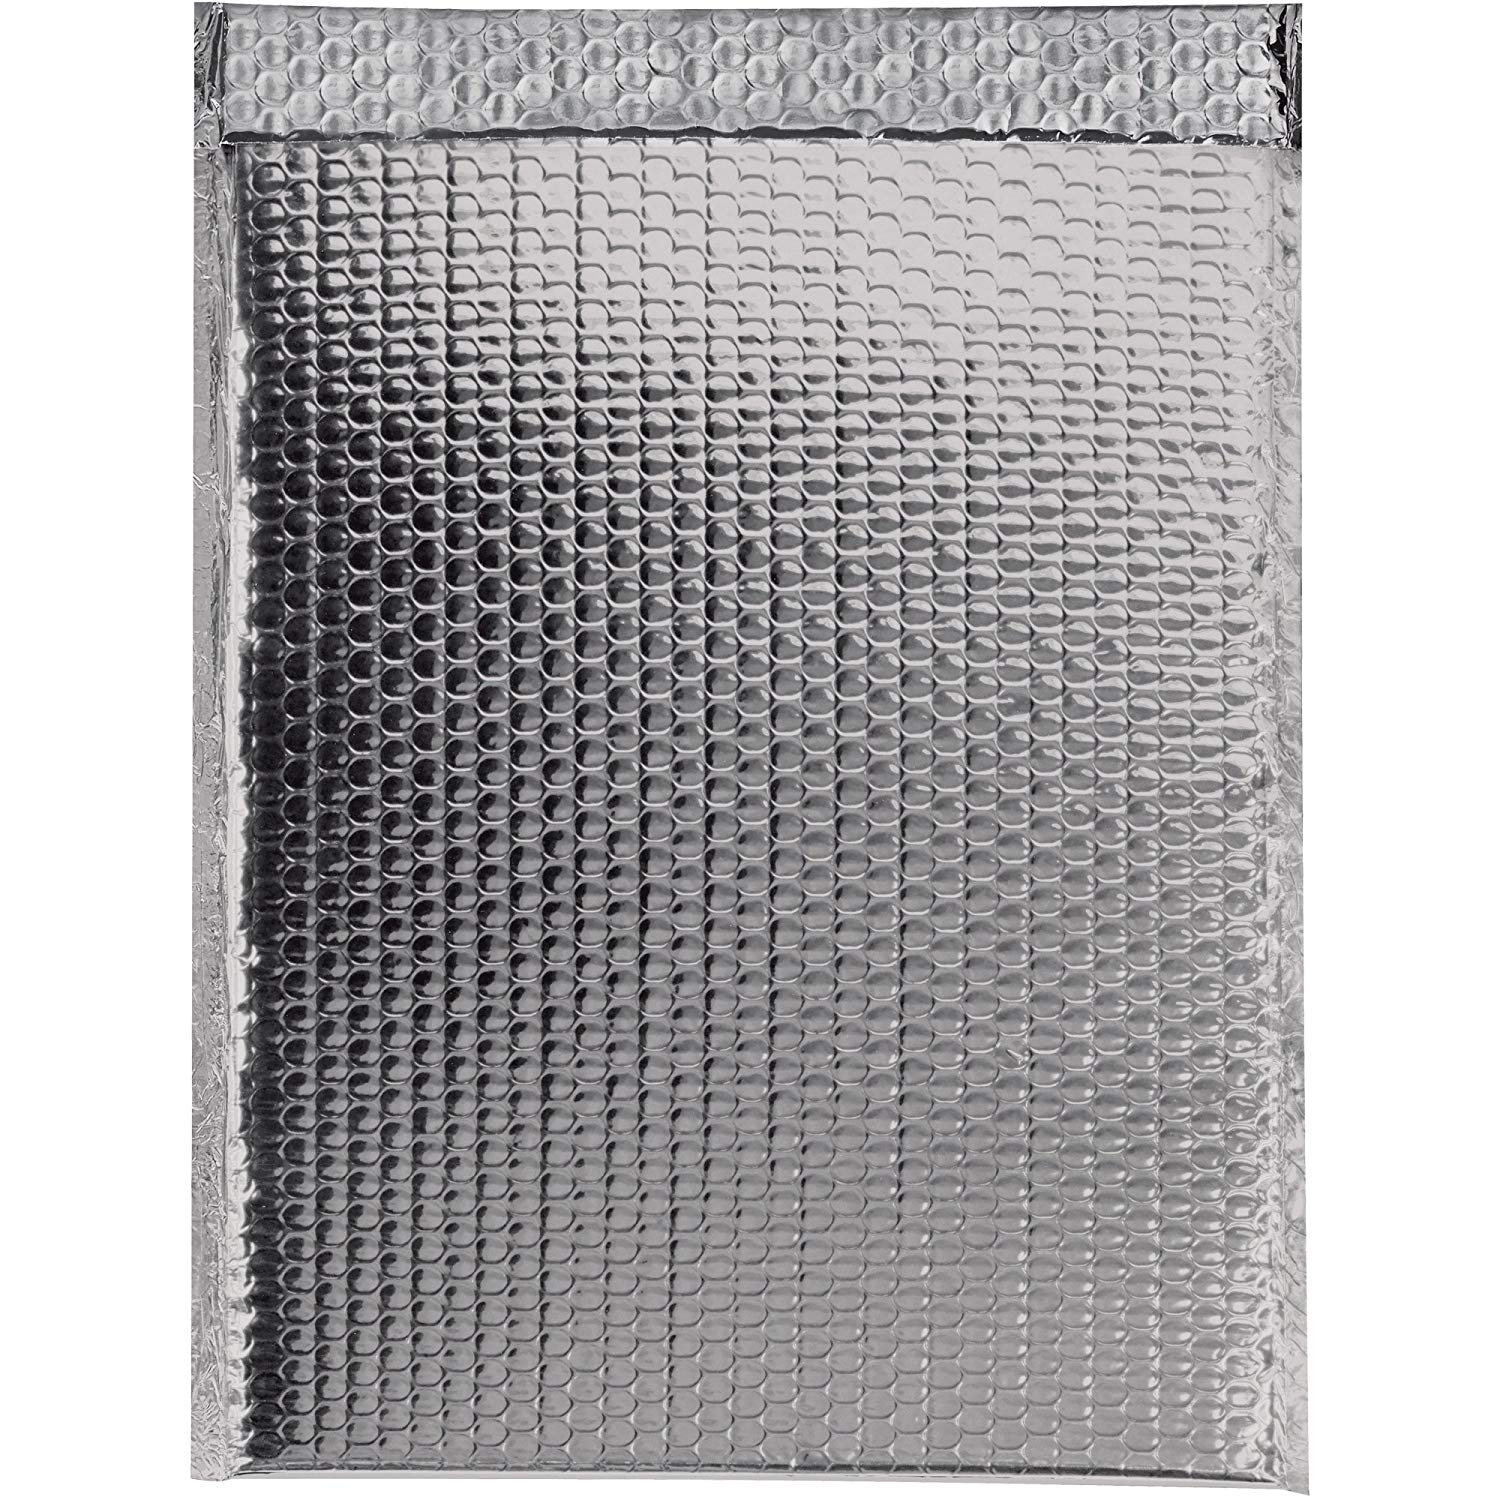 "Boxes Fast BFGBM1317S Glamour Bubble Mailers, 13"" x 17 1/2"", Silver (Pack of 100)"